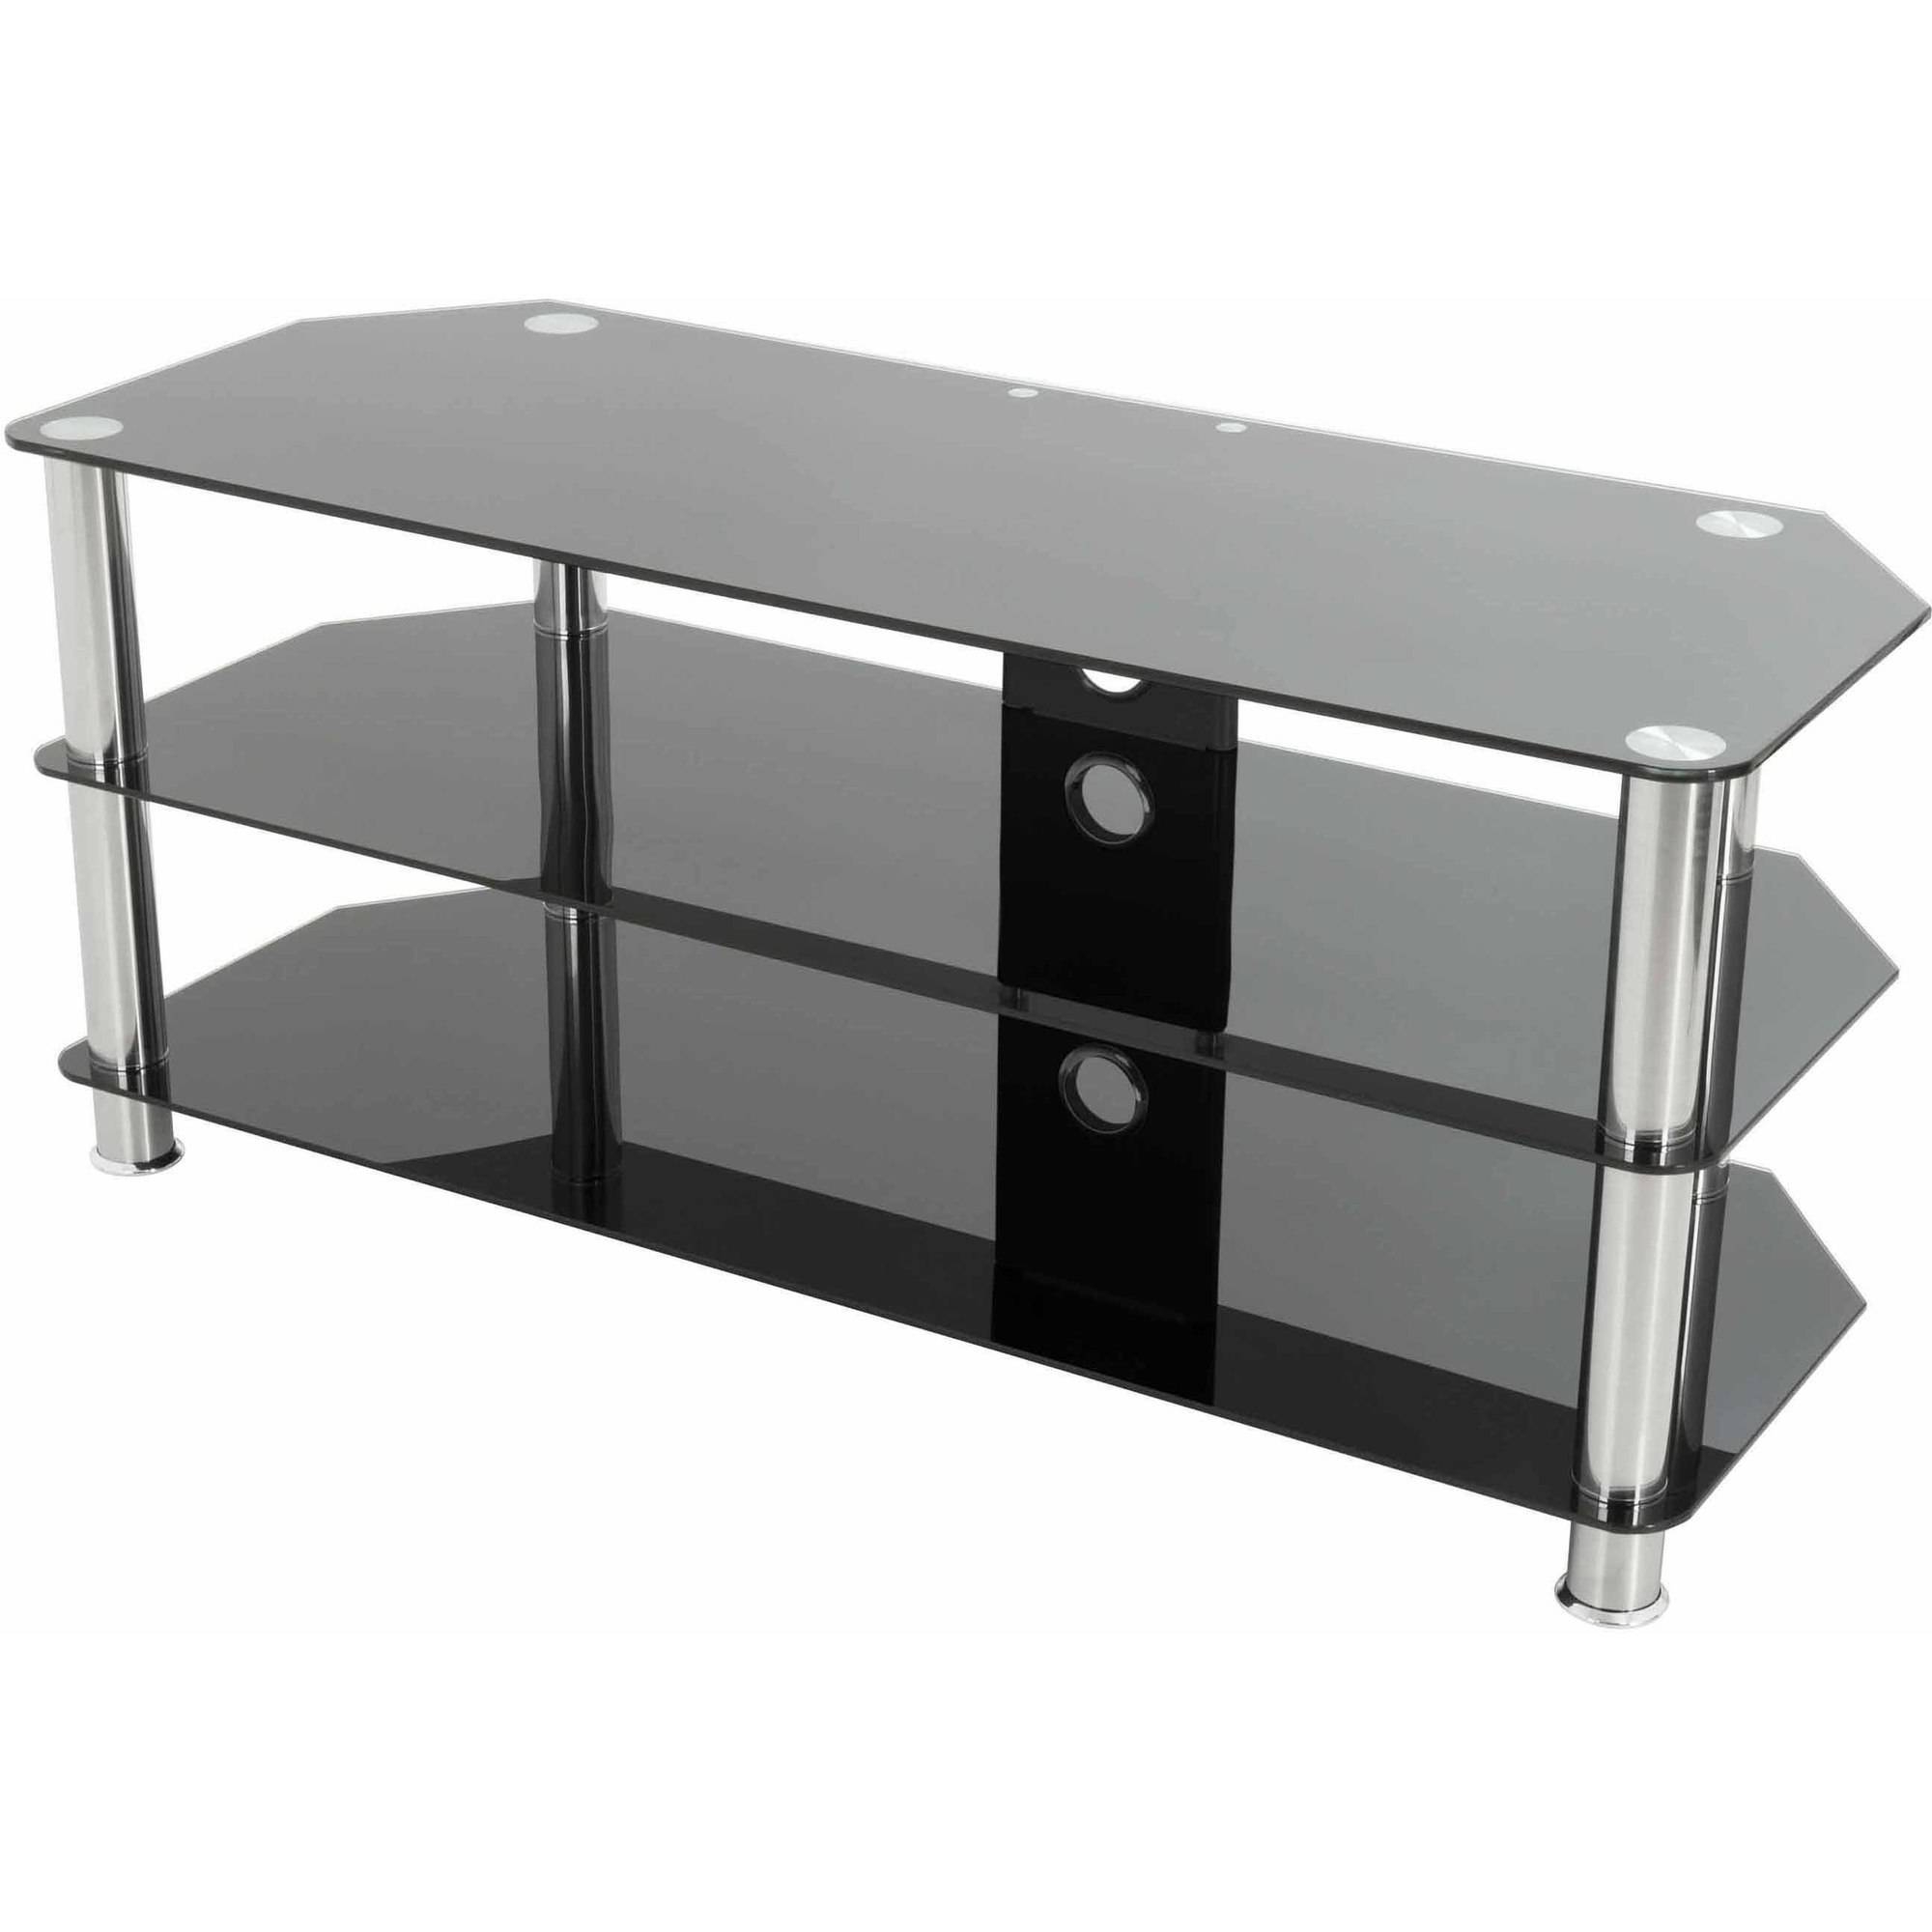 Glass Tv Stands Inside Well Known Avf Classic Corner Glass Tv Stand With Cable Management For Up To  (View 10 of 20)